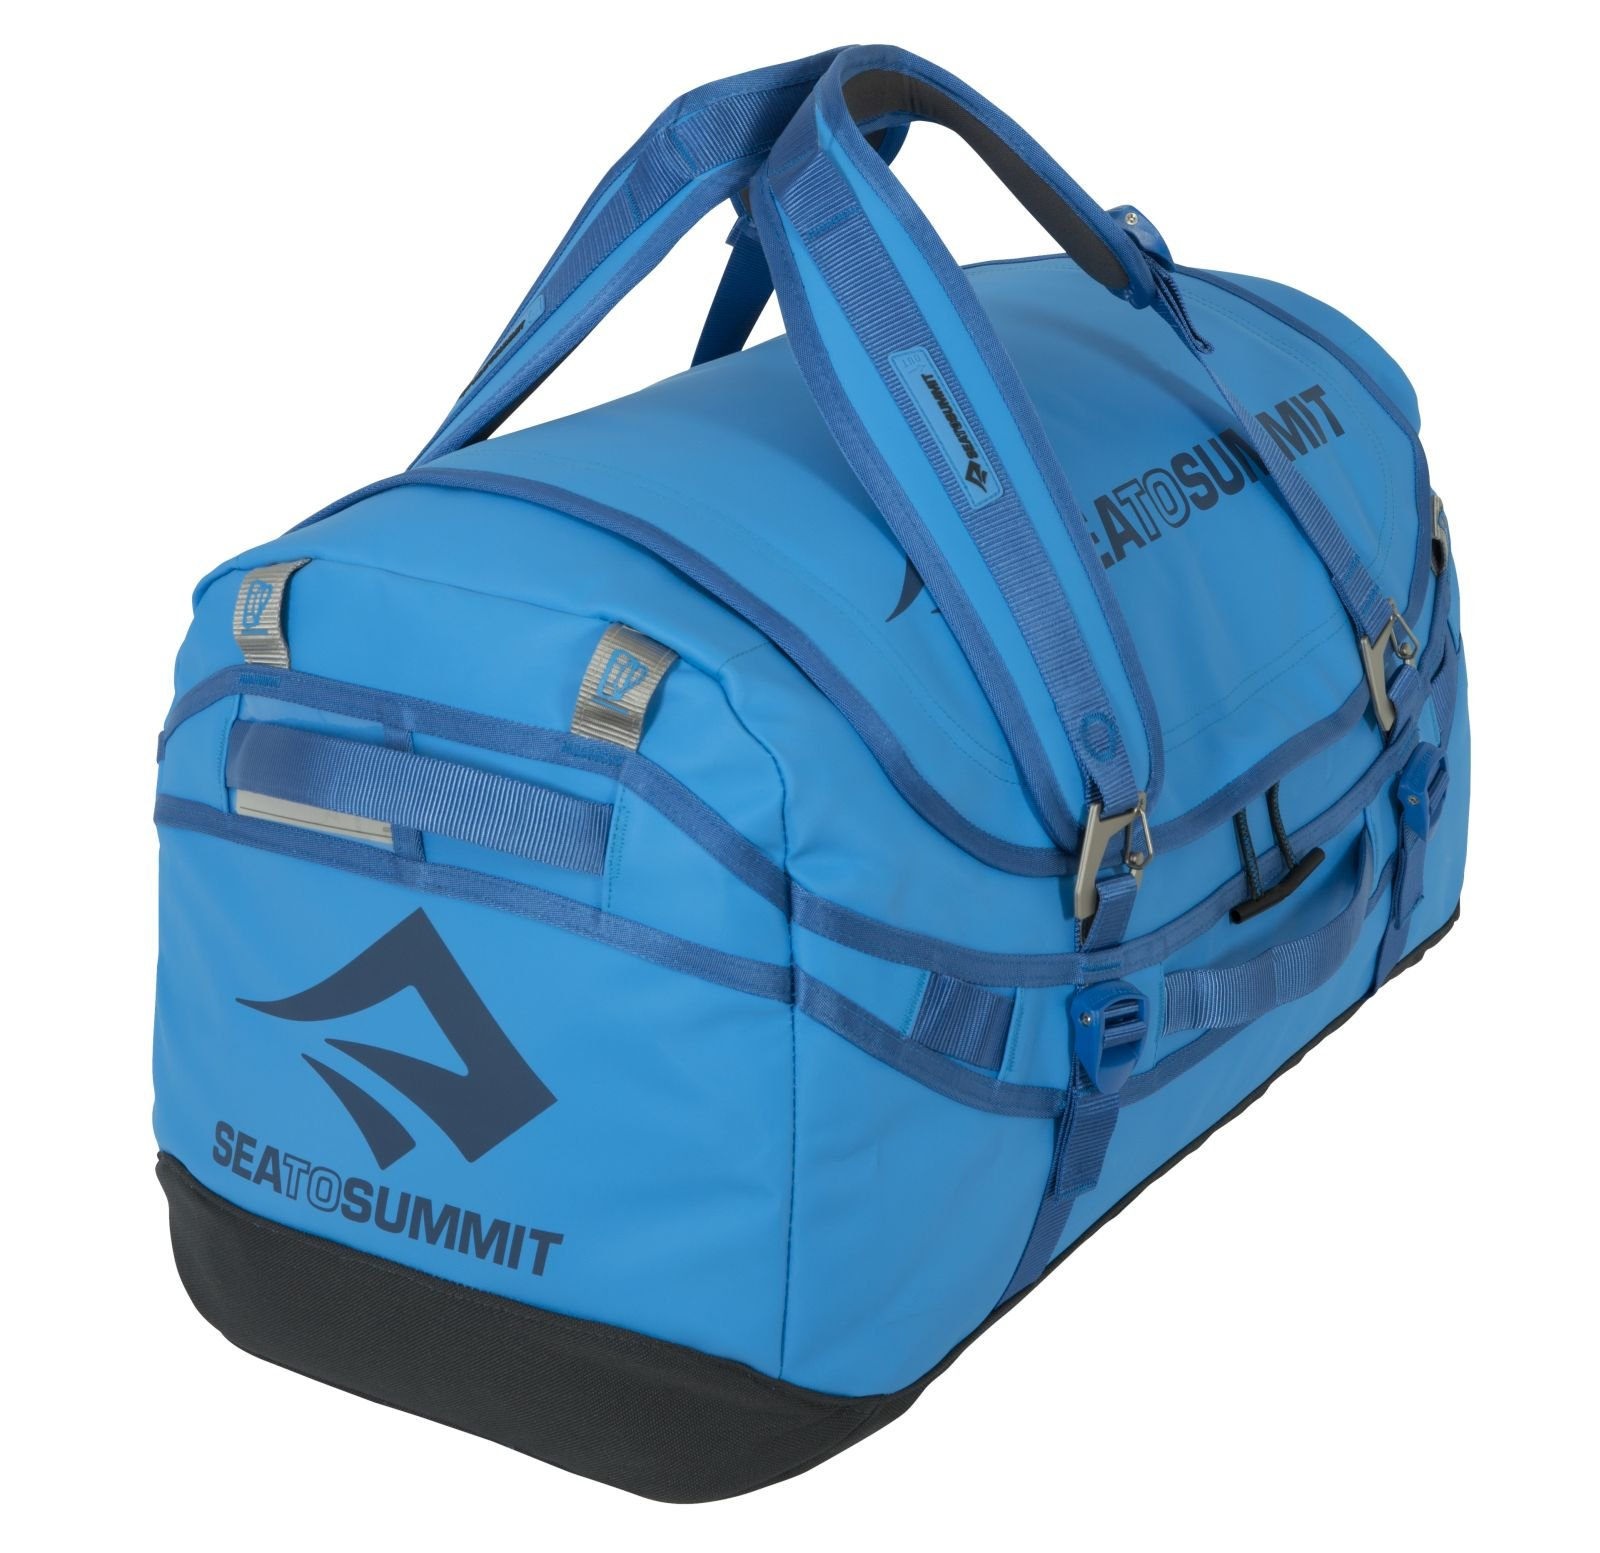 Sea to Summit Nomad Durable Travel Duffle & Backpack, Blue, 90 L